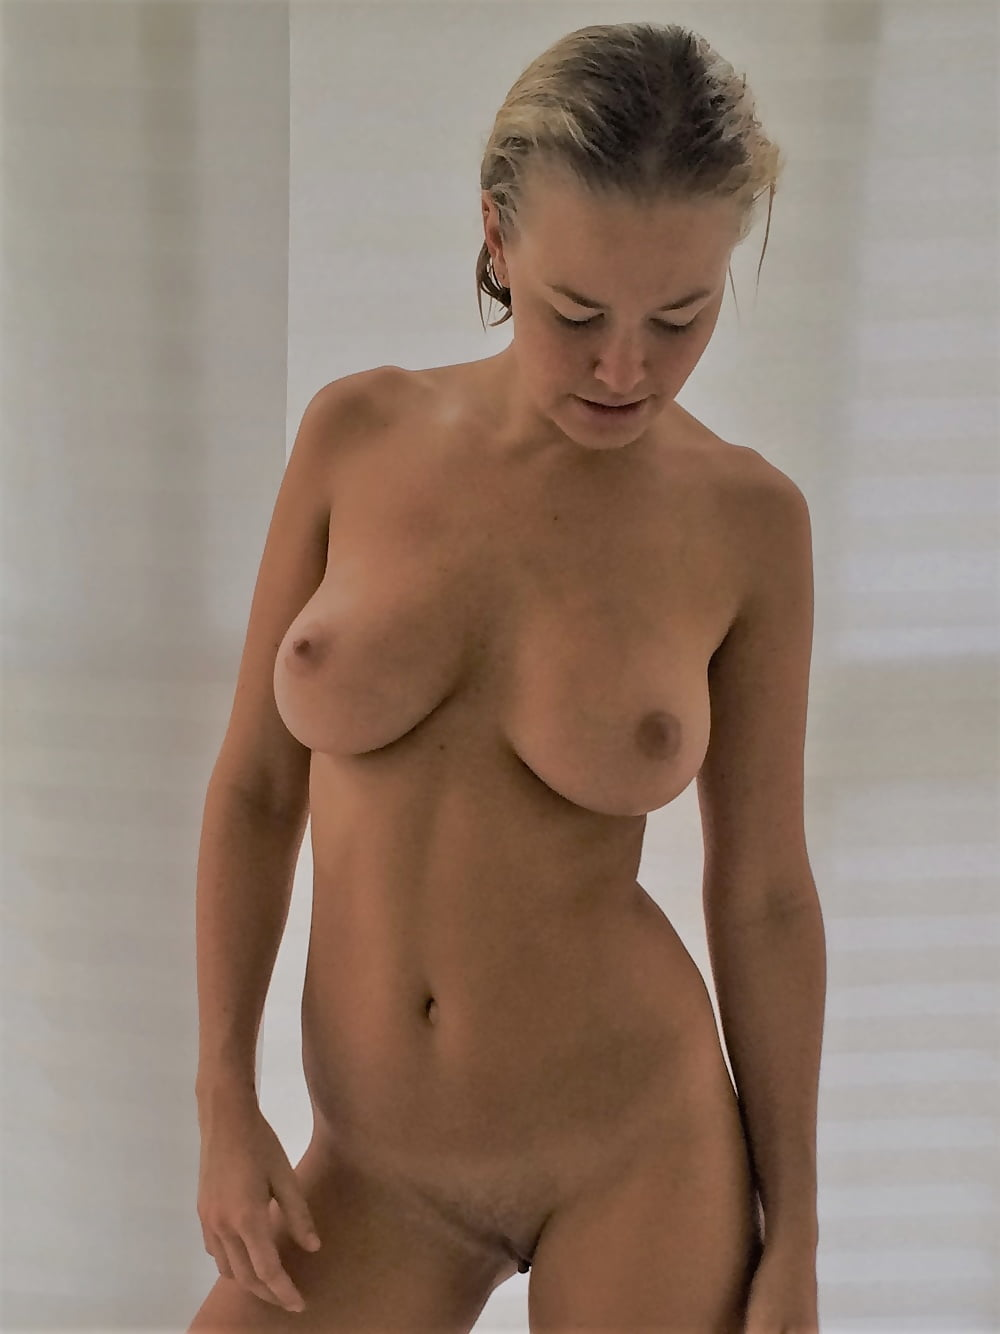 Never lara bingle nude pica commit